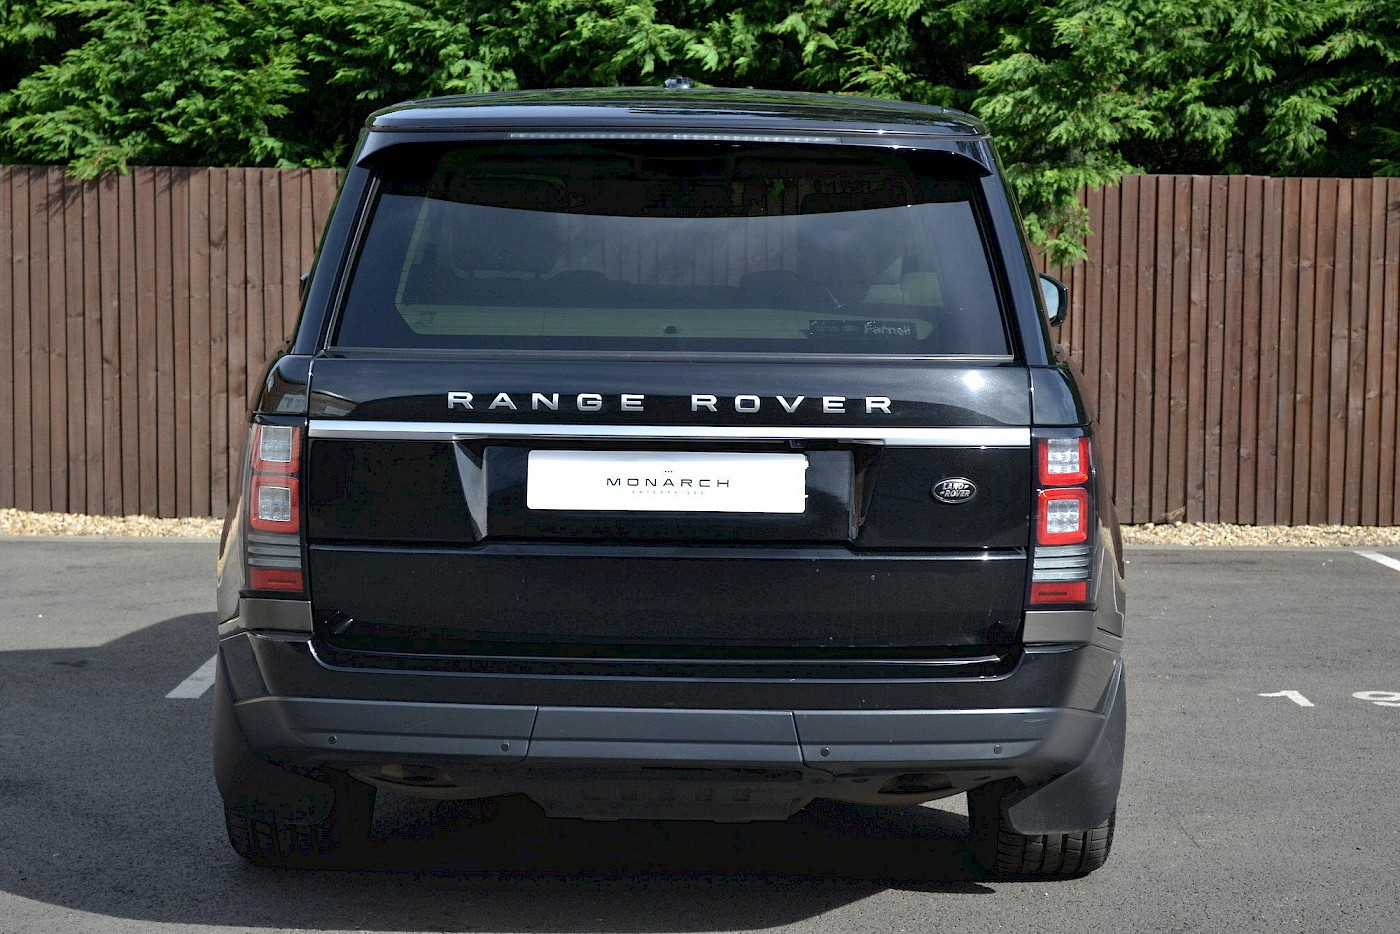 2013/13 Land Rover Range Rover Vogue 4.4 4